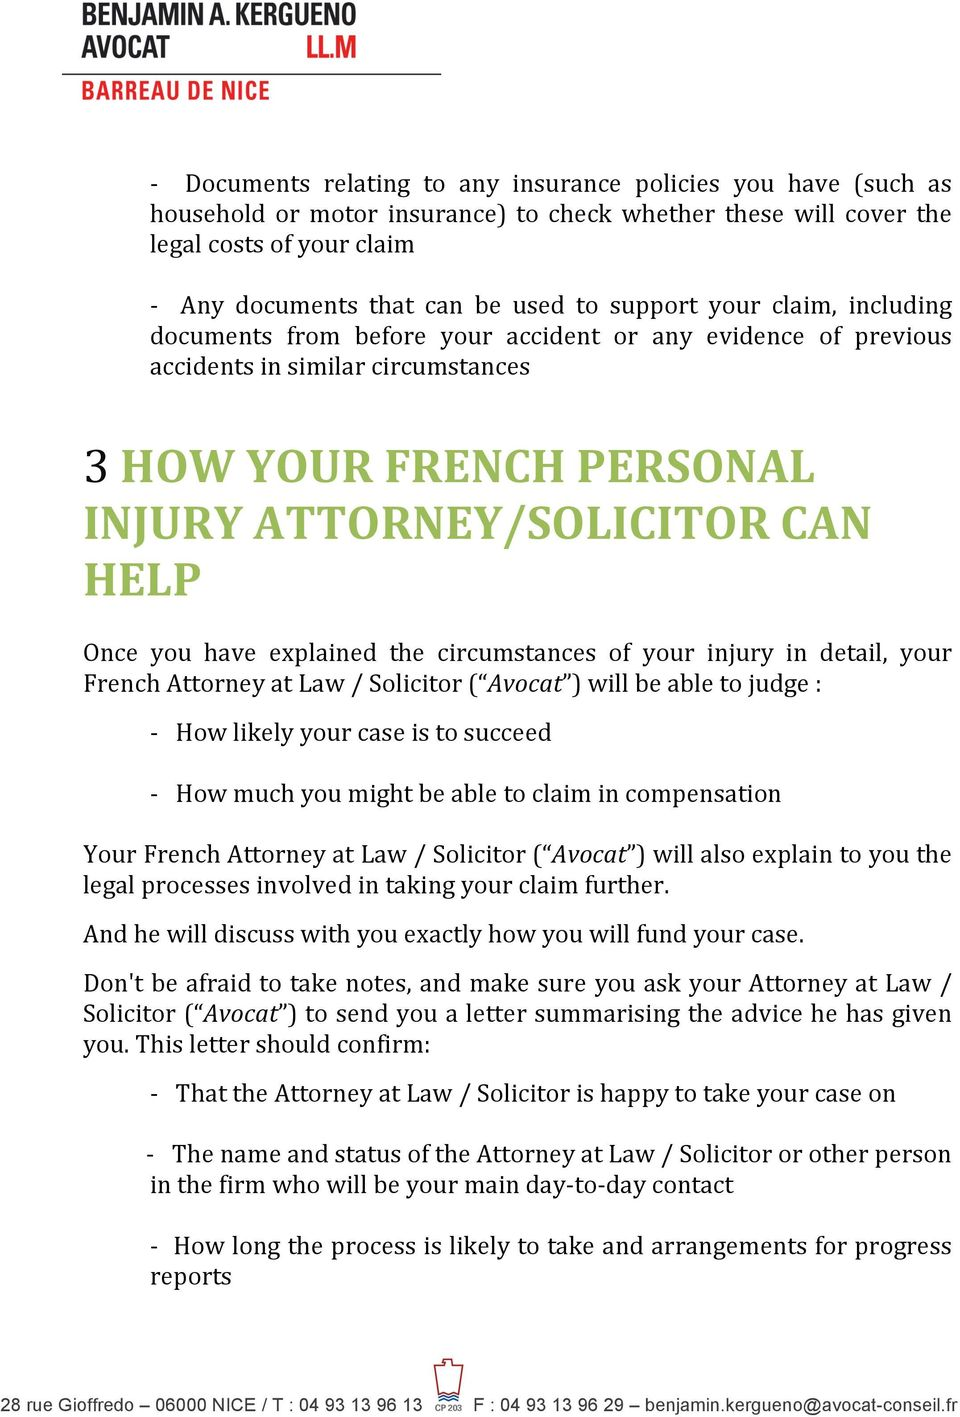 have explained the circumstances of your injury in detail, your French Attorney at Law / Solicitor ( Avocat ) will be able to judge : - How likely your case is to succeed - How much you might be able